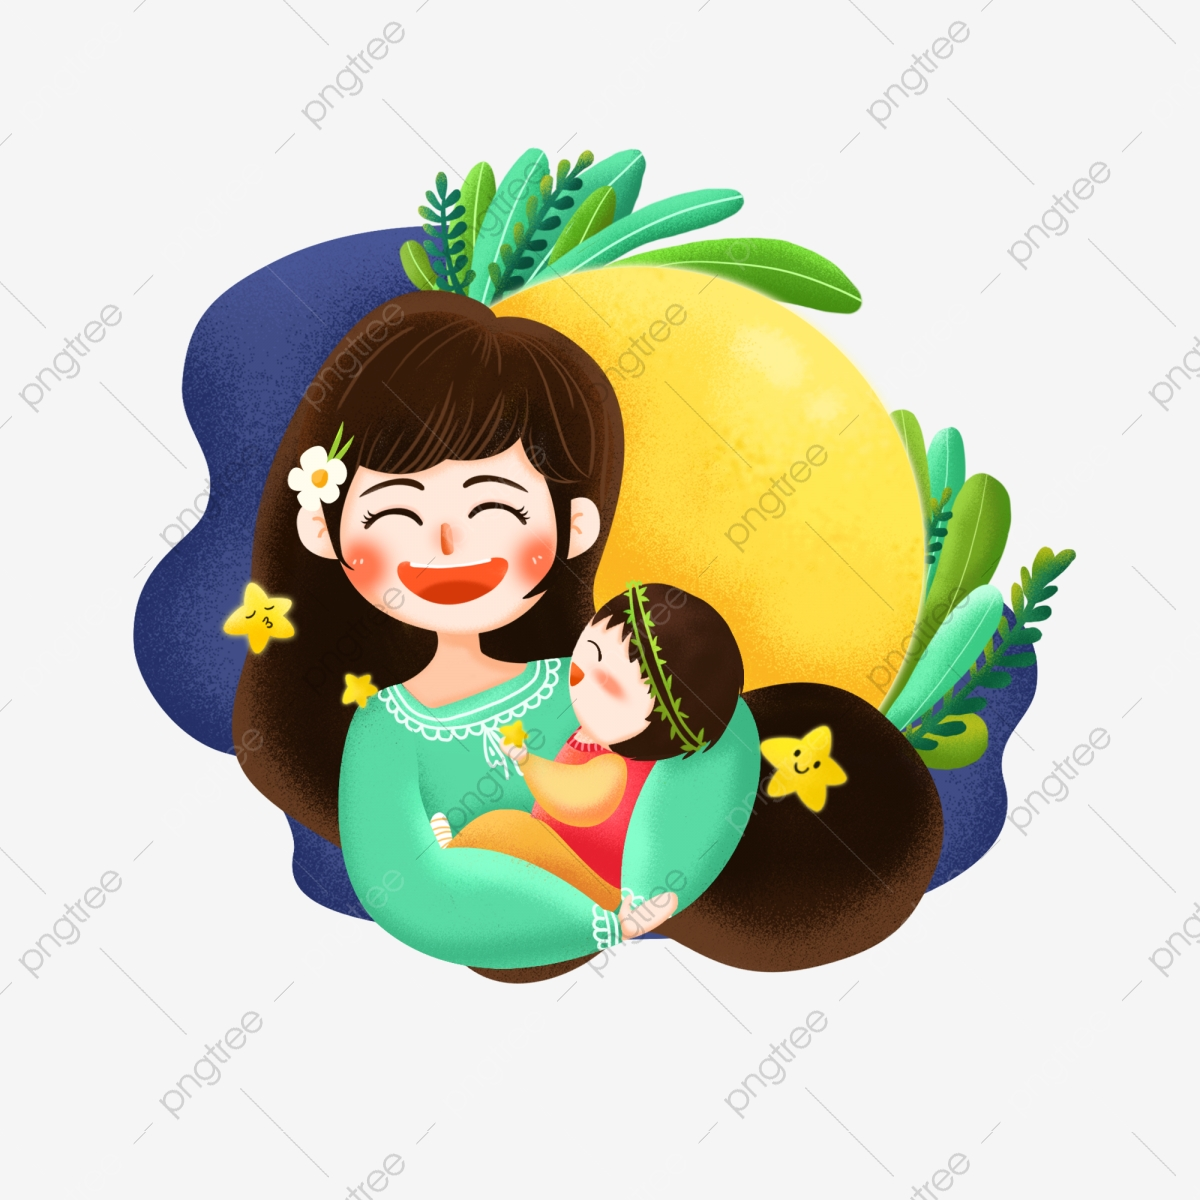 Mom child interaction character. Mother clipart good night